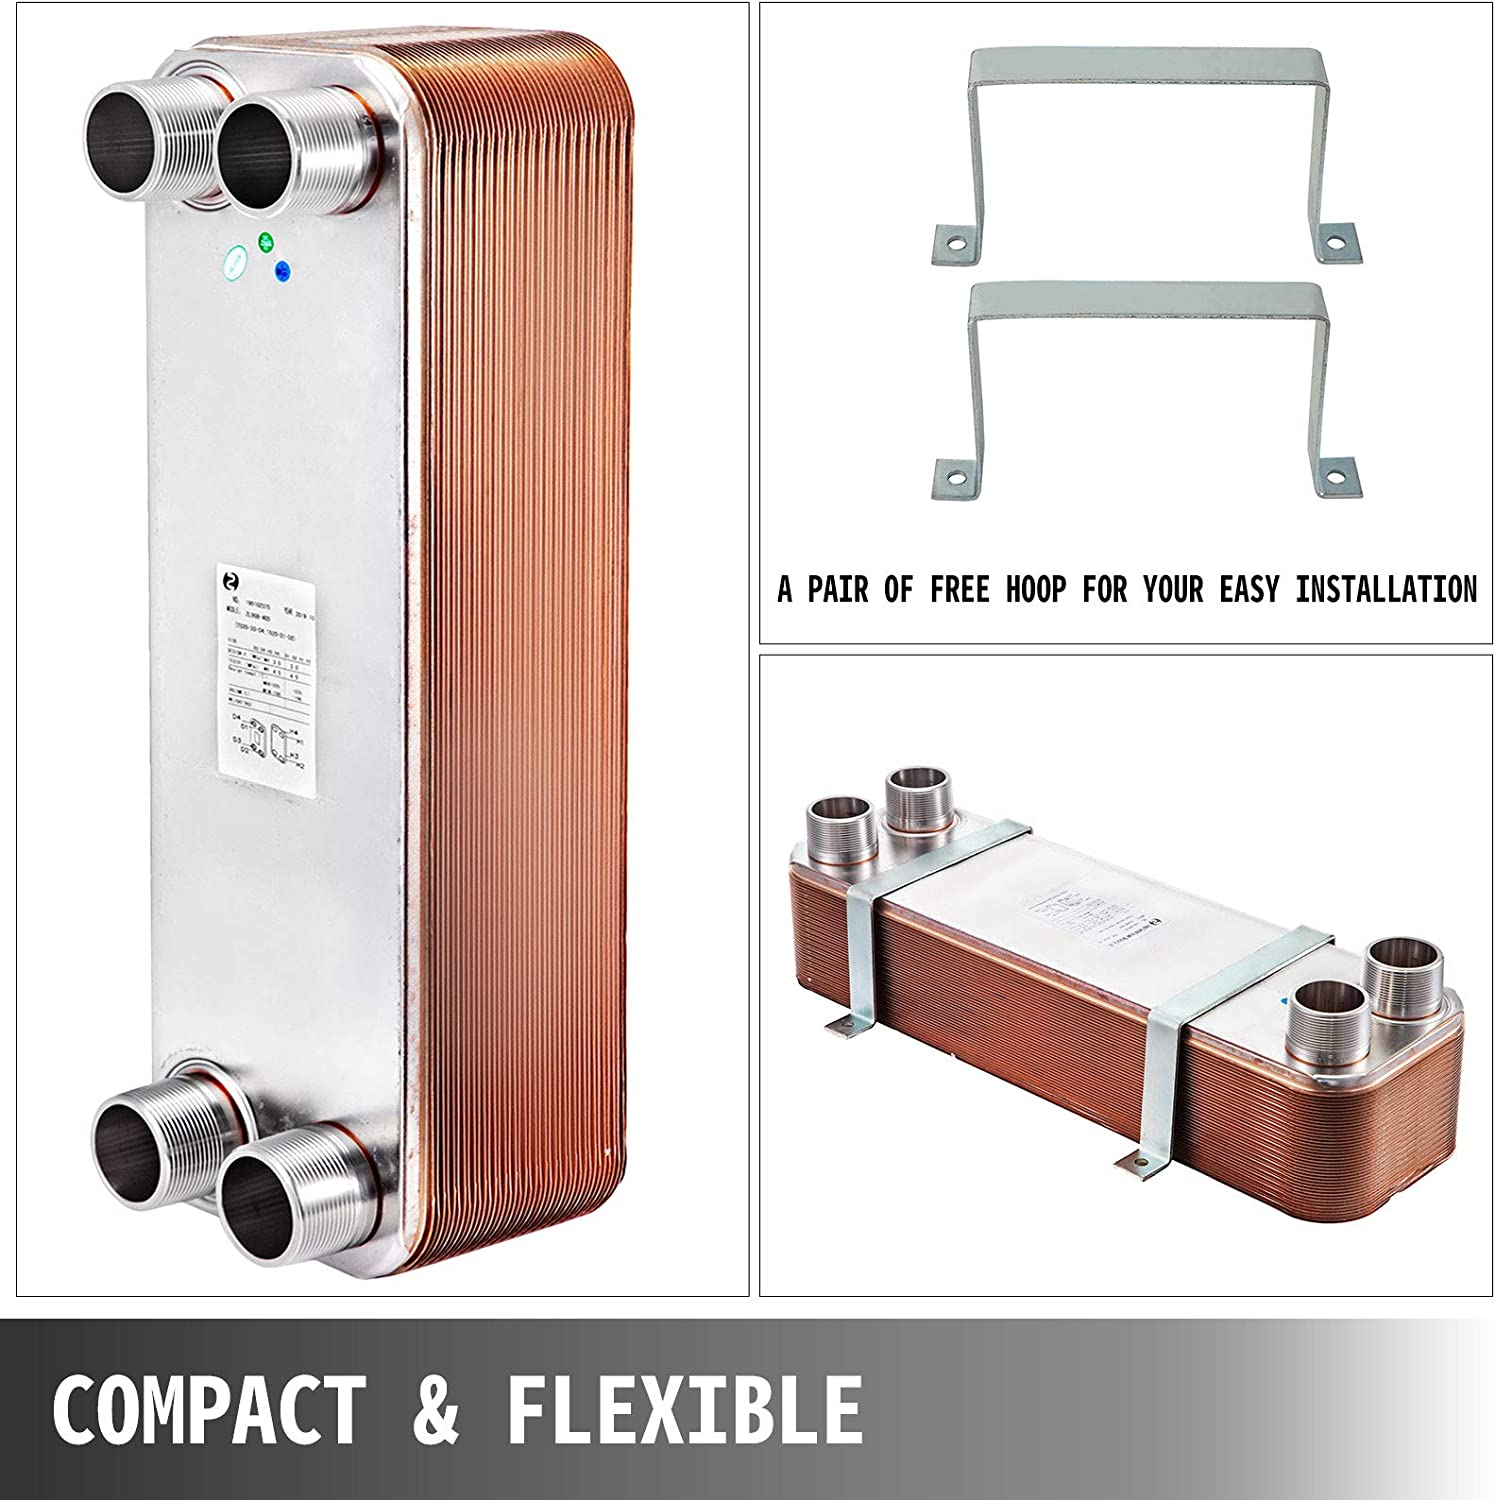 BestEquip Heat Exchanger 3x7.5 12 Plates Brazed Plate Heat Exchanger 316L 3//4 MPT Heat Exchanger 4.5 Mpa Beer Wort Chiller for Hydronic Heating